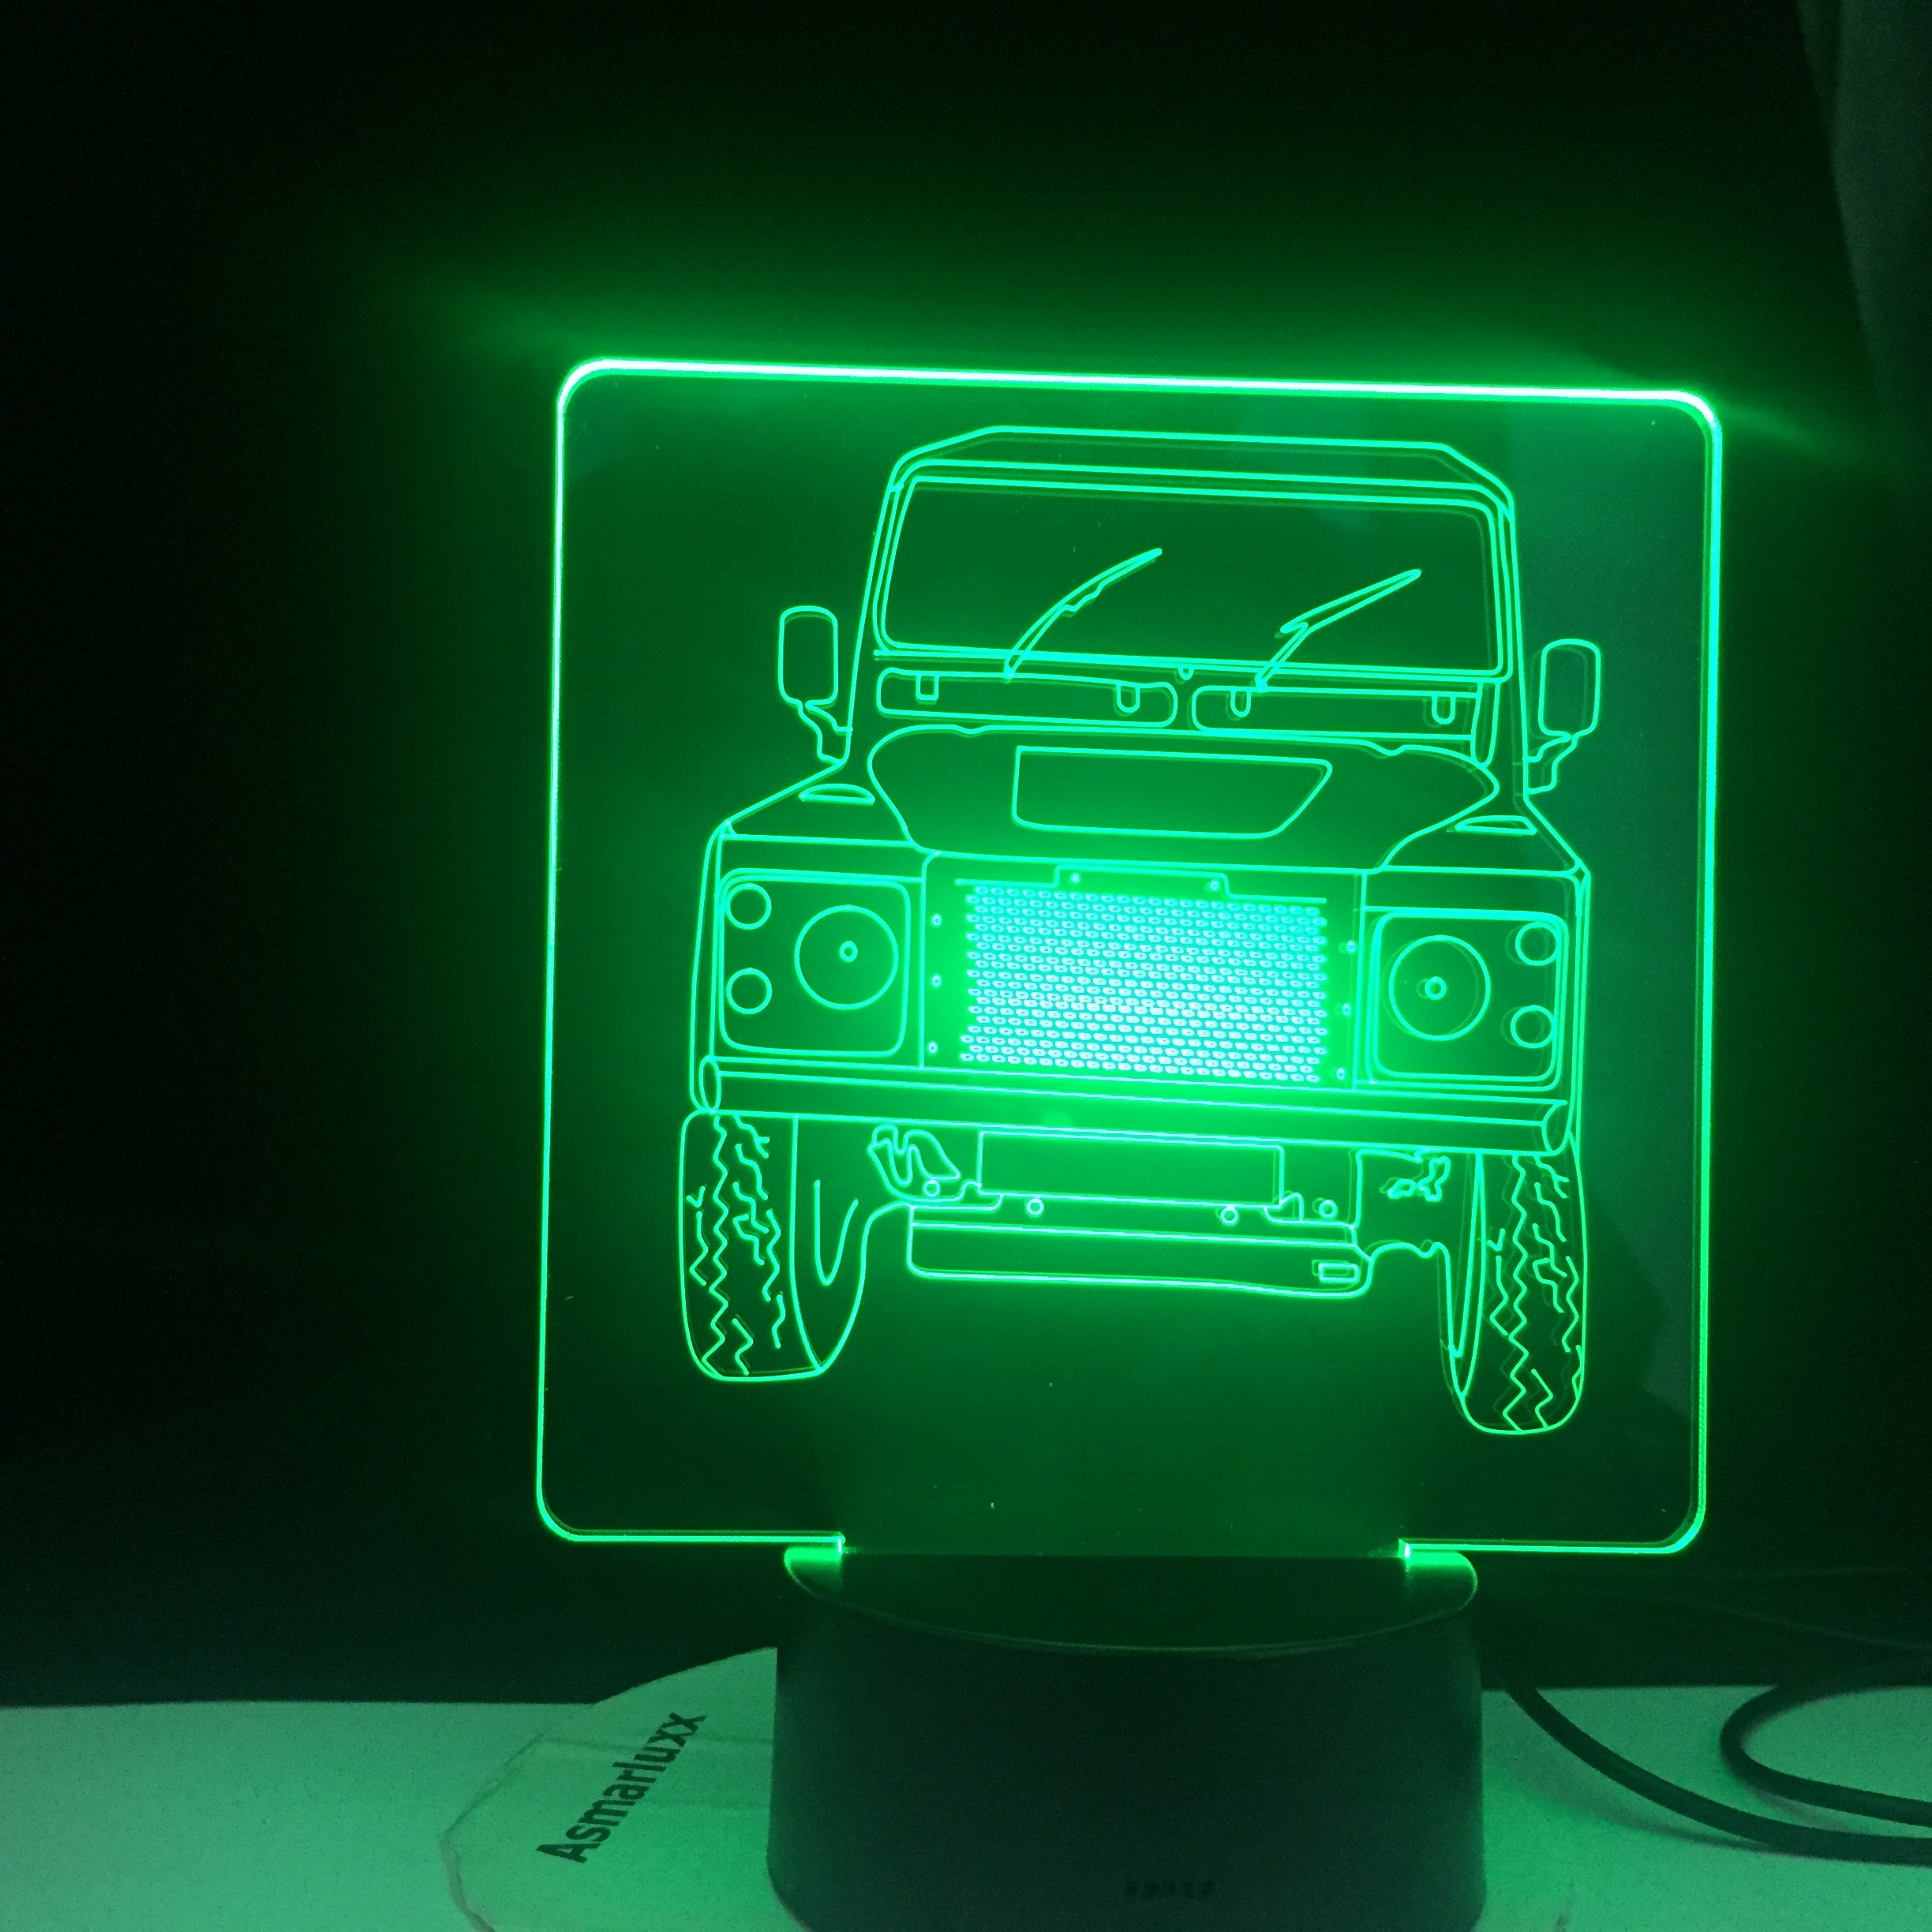 Offroad Landrover Car 3d Illusion Led Night Light for Child Bedroom Decorative Nightlight Unique Gift for Kids Room Desk Lamp